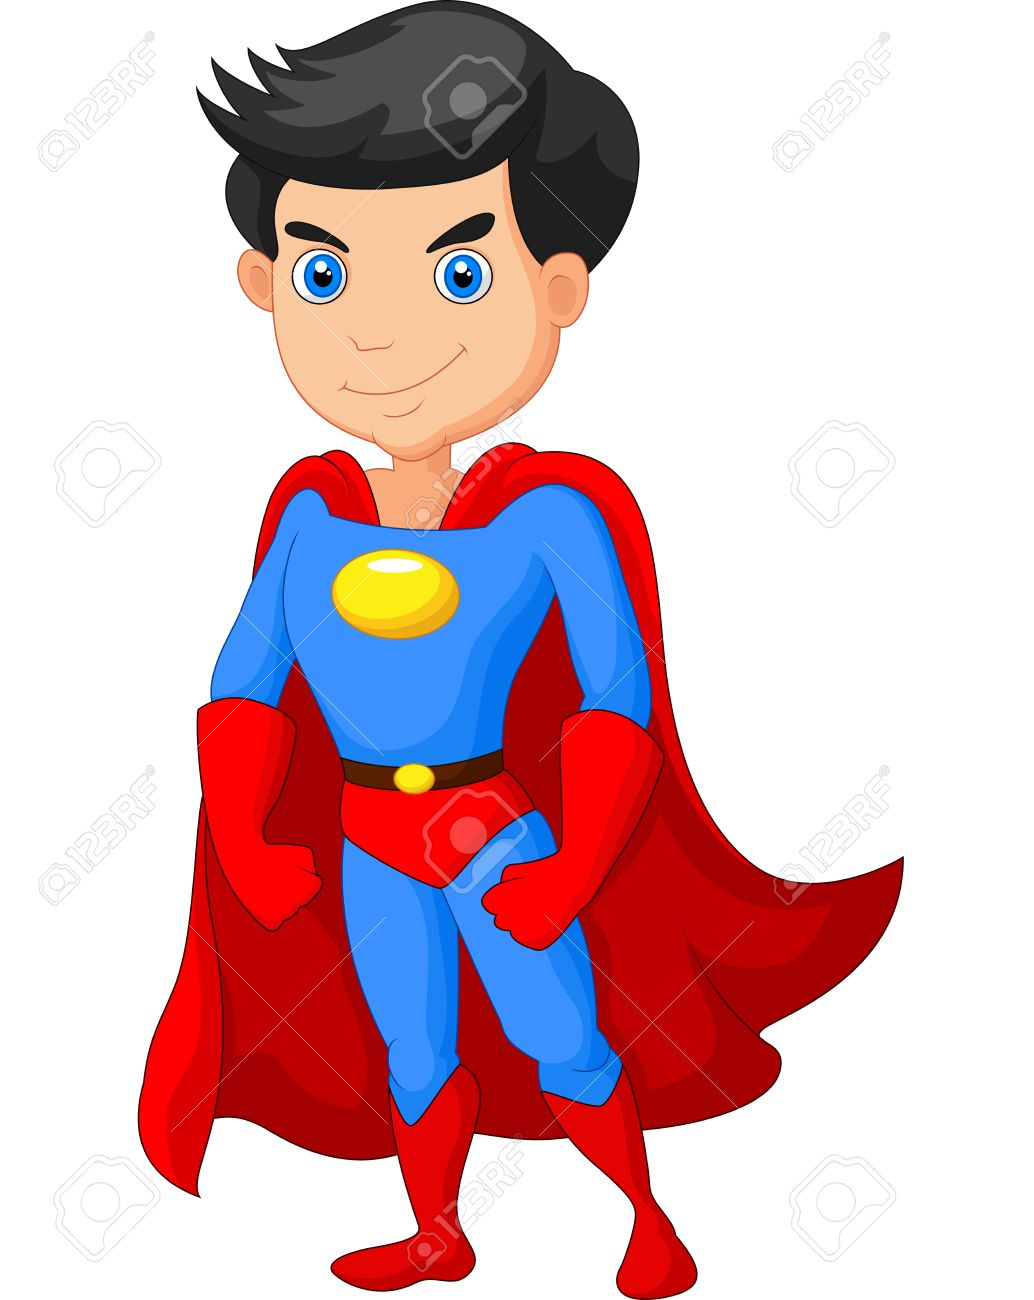 Cartoon Super Hero Boy Posing Royalty Free Cliparts Vectors And Stock Illustration Image 38817156